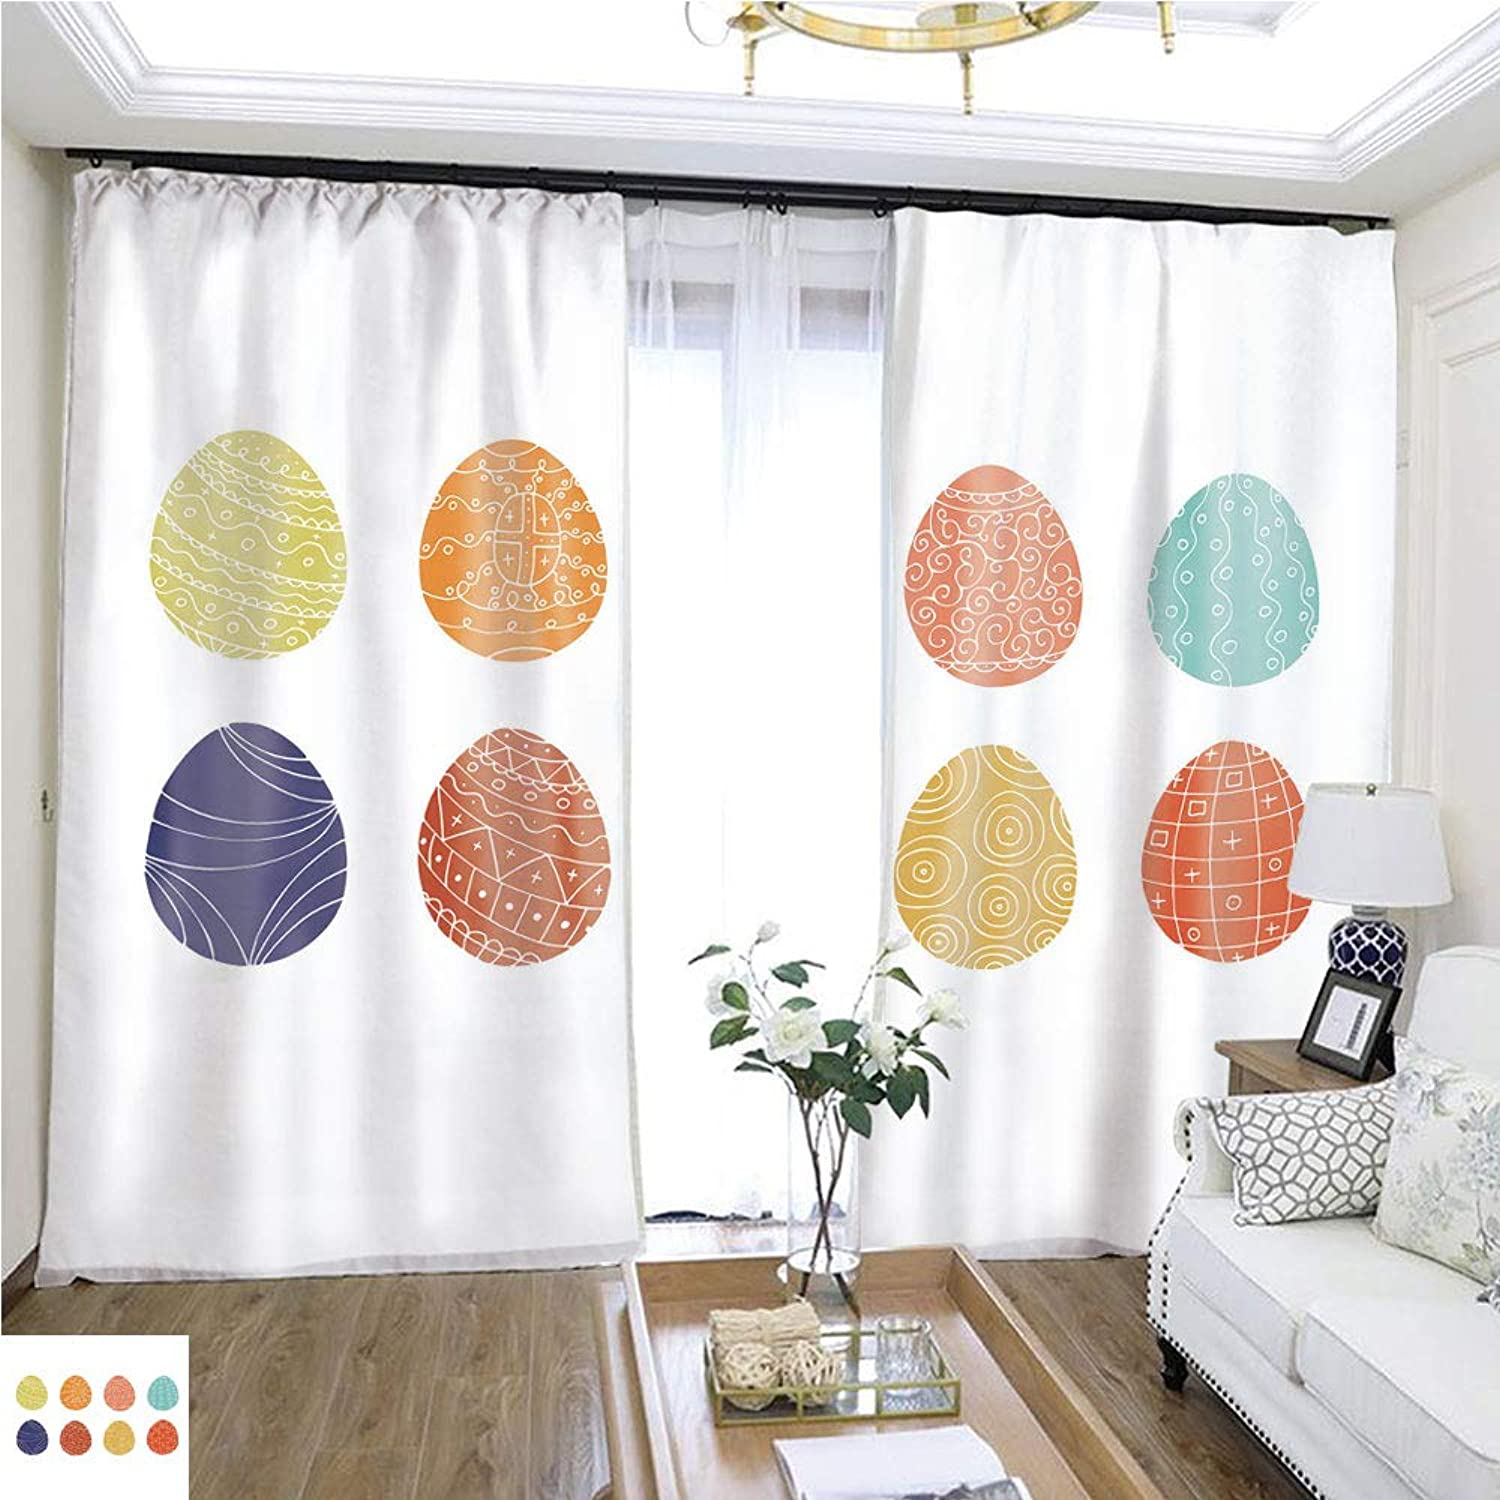 Air Port Screen colorful Easter Eggs Collection in Doodle Style Hand Drawn W96 x L204 Provide Heat Highprecision Curtains for bedrooms Living Rooms Kitchens etc.